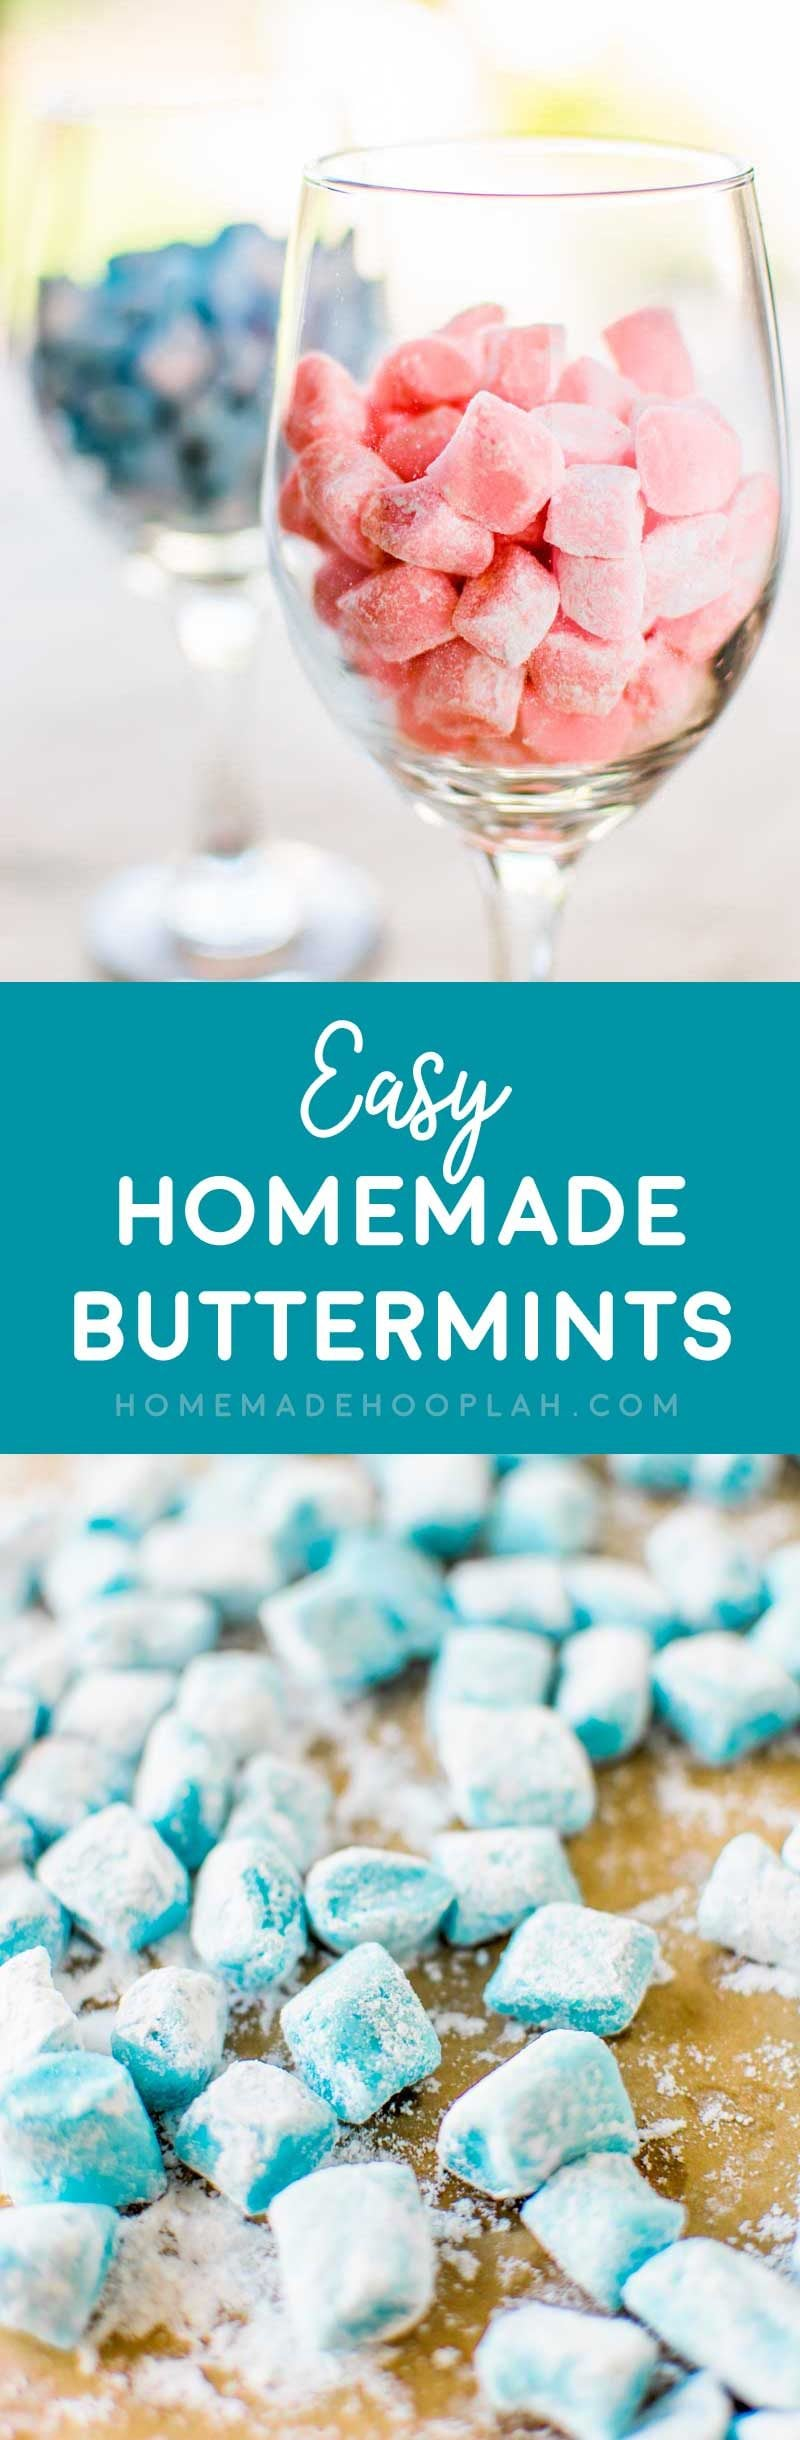 Easy Homemade Buttermints! A perfect appetizer or gift, this melt-in-your-mouth buttermint recipe is surprisingly easy to make at home. Customize them with different colors! | HomemadeHooplah.com